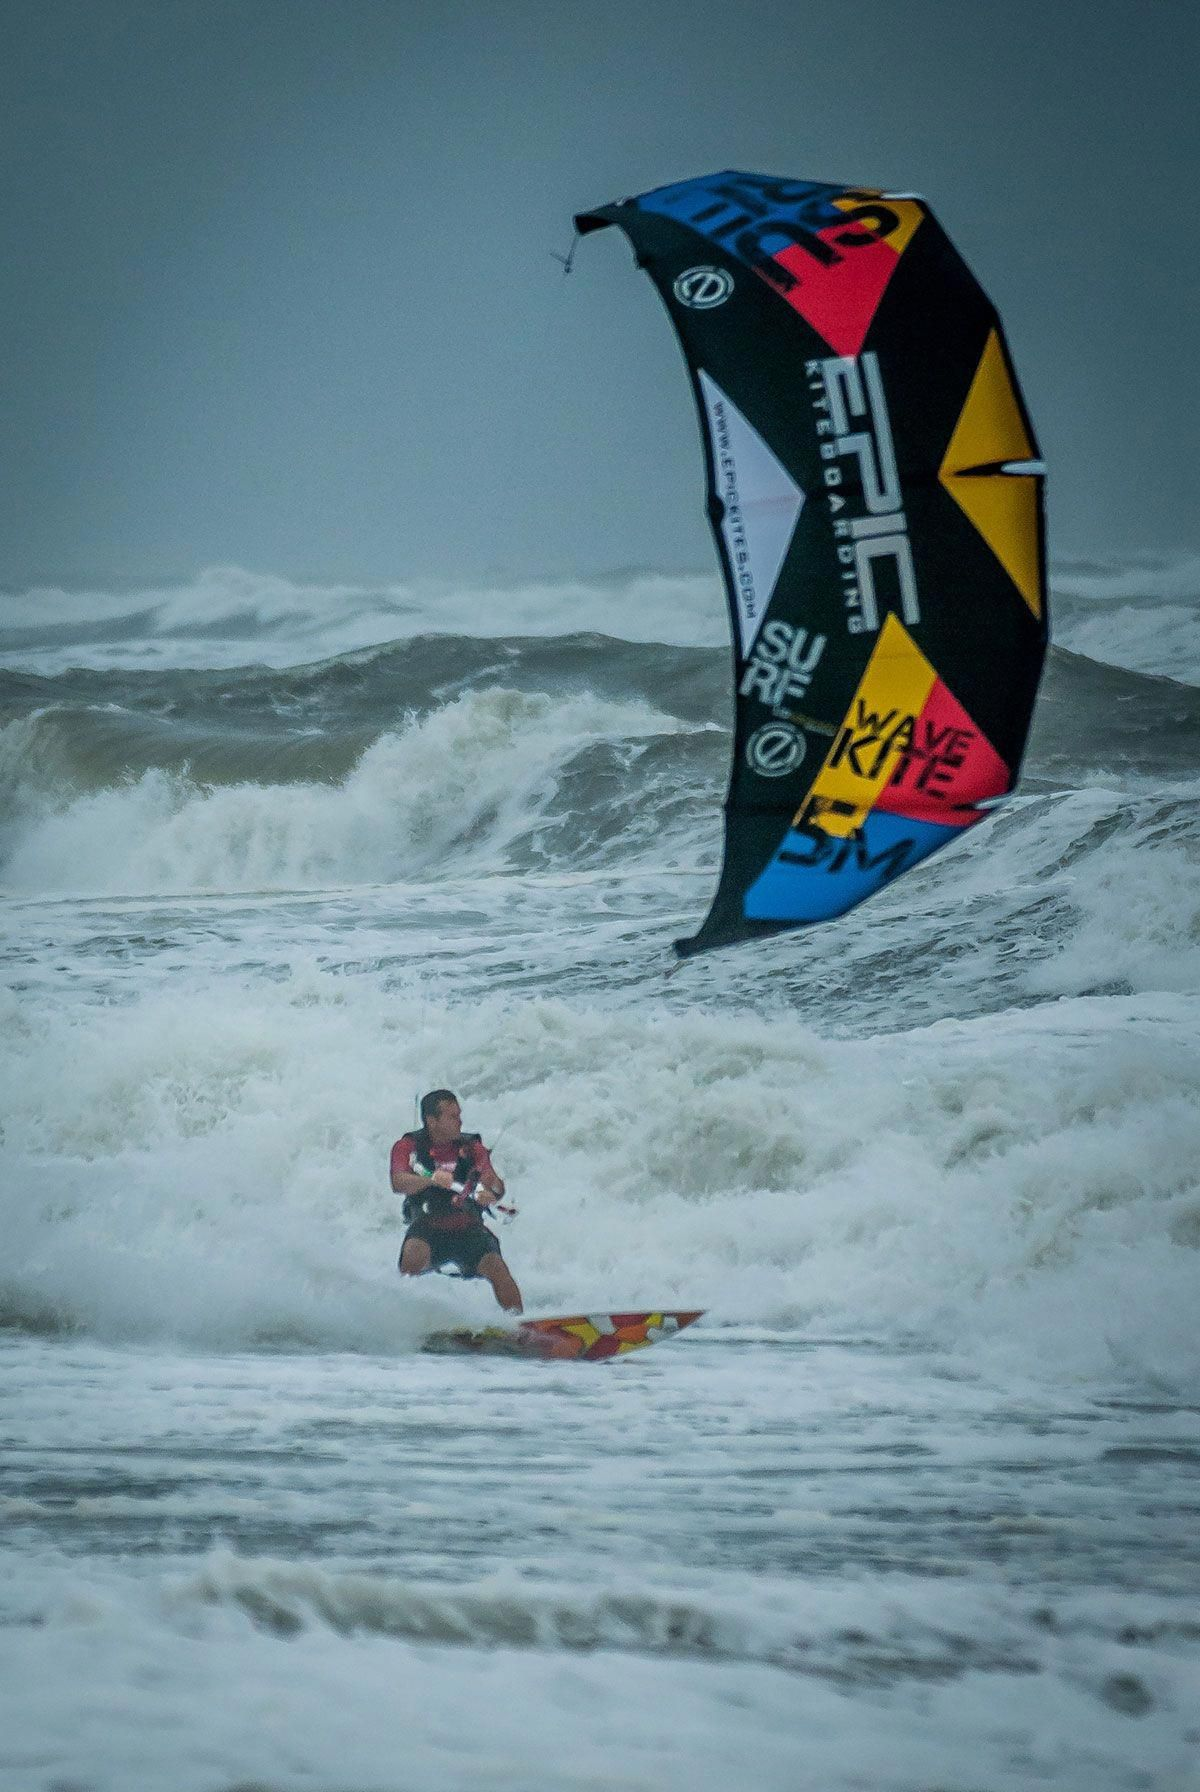 SURF kite in action in OBX 2014, Epic Kites Kiteboarding Gear Action